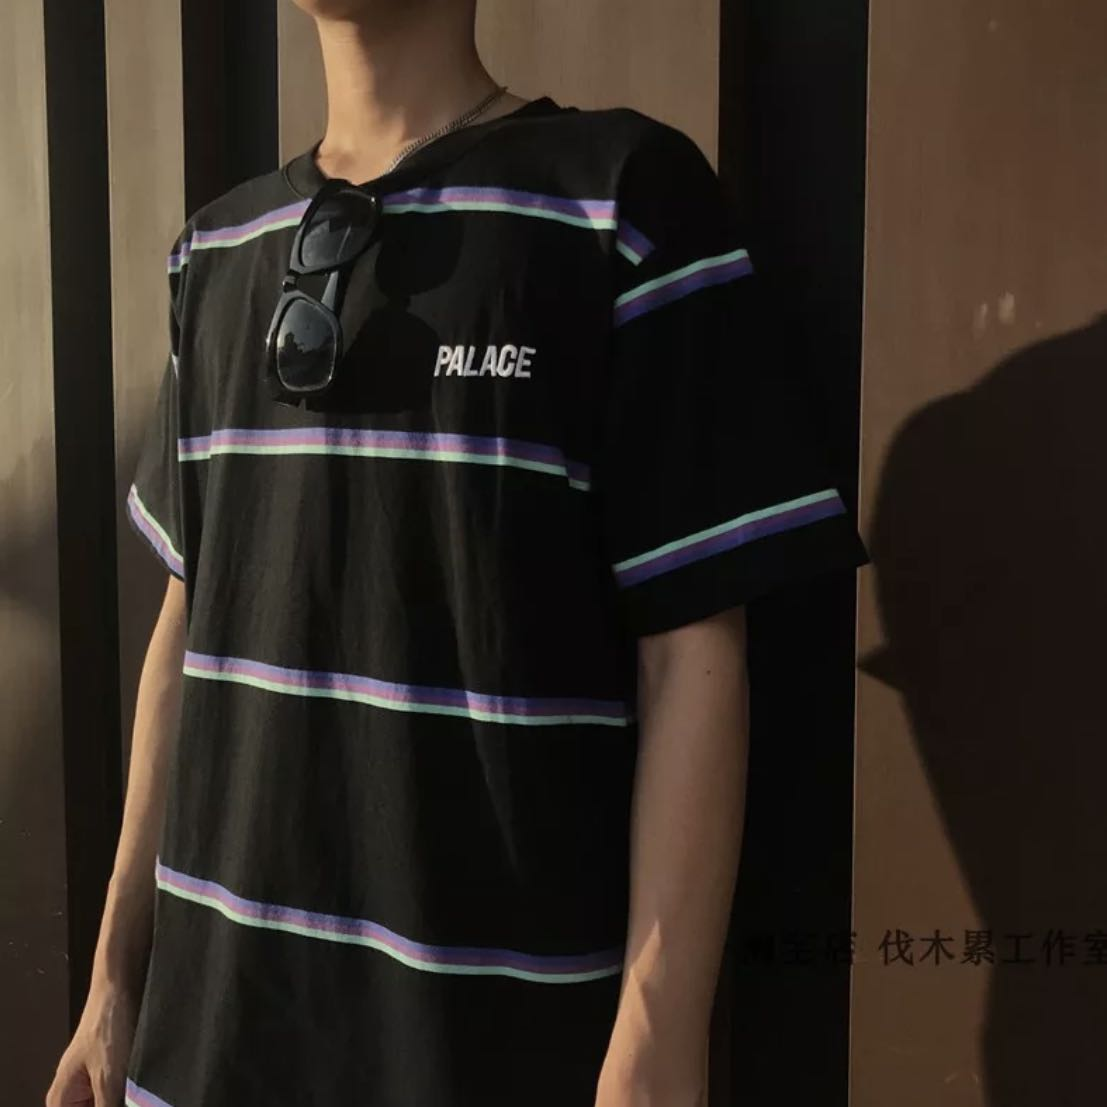 11d58a88e6bc Black Palace Shirt With Stripes